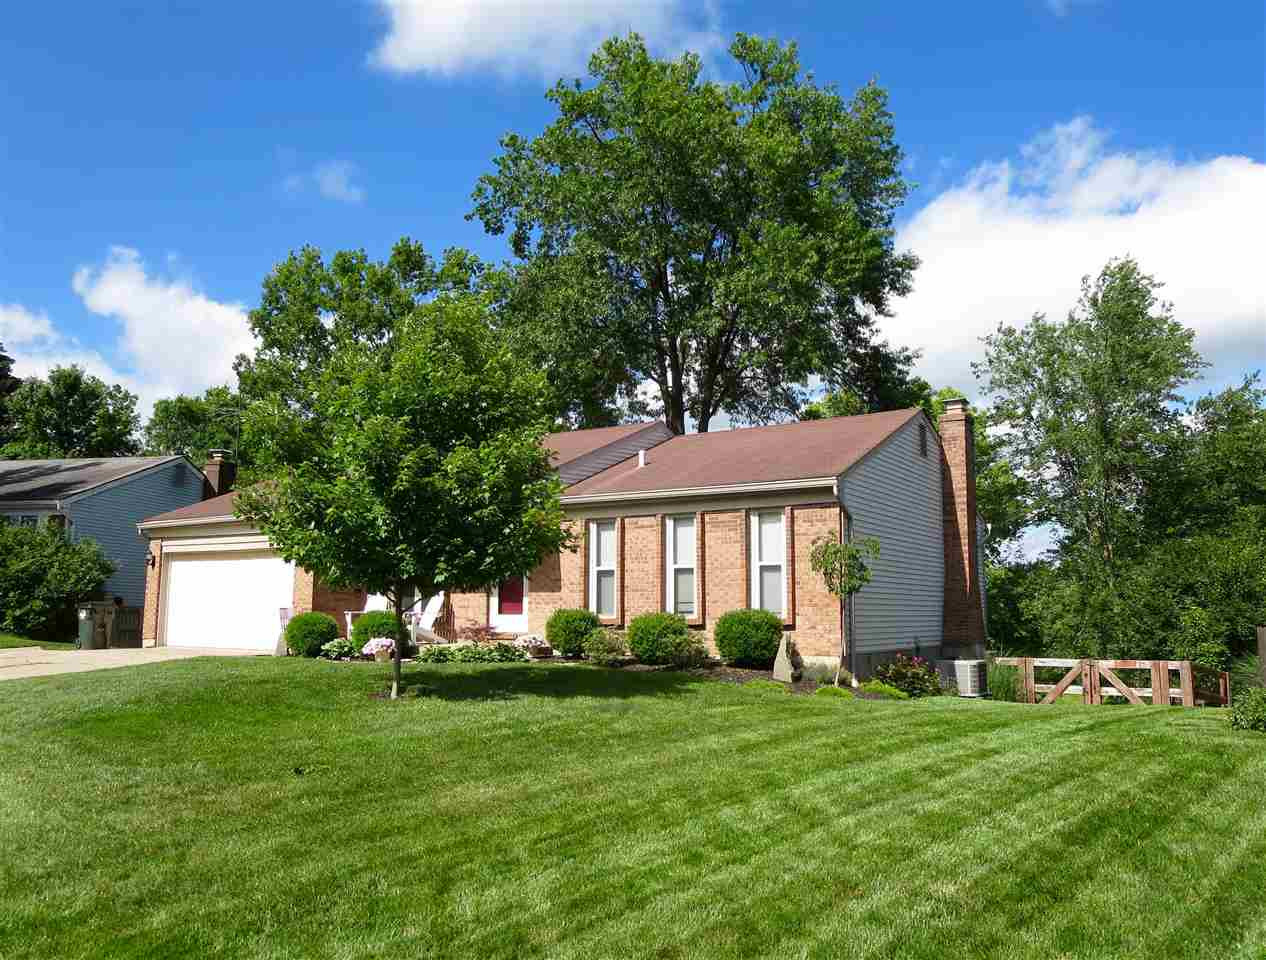 Photo 1 for 448 Glenview Ct Edgewood, KY 41017